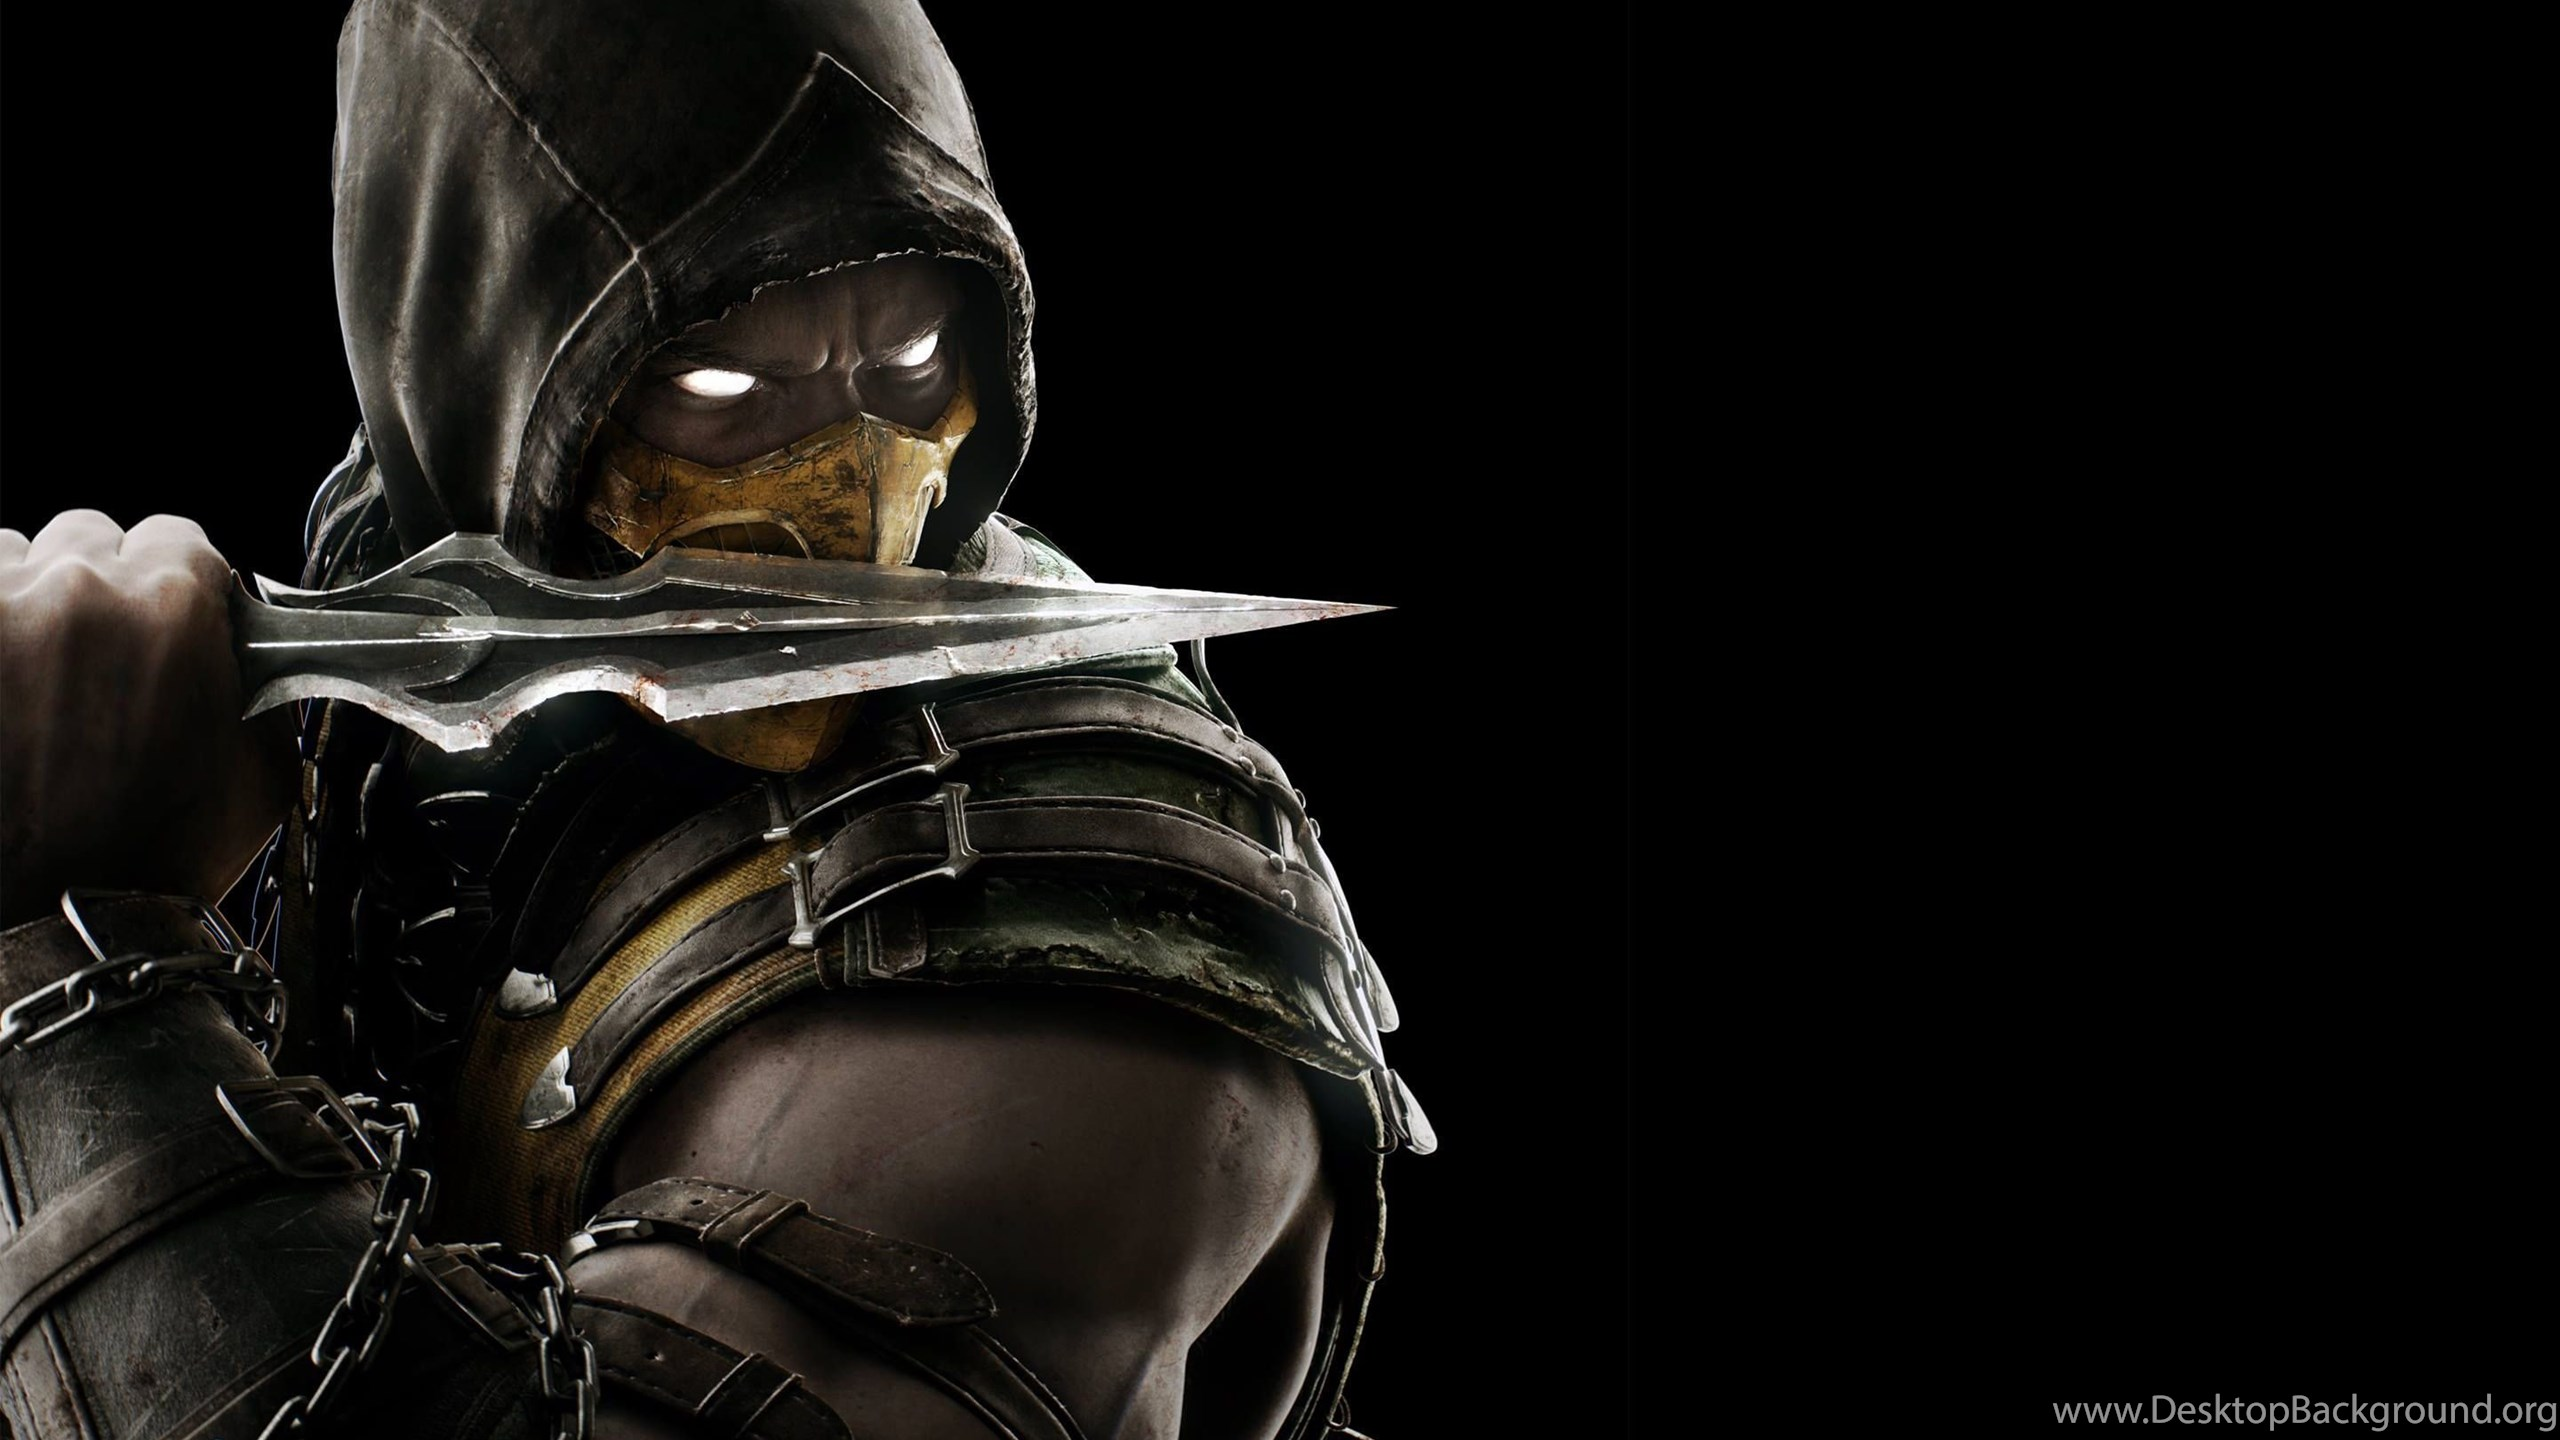 Mortal Kombat X Background: Mortal Kombat X Wallpapers HD 8 Gallery Desktop Background